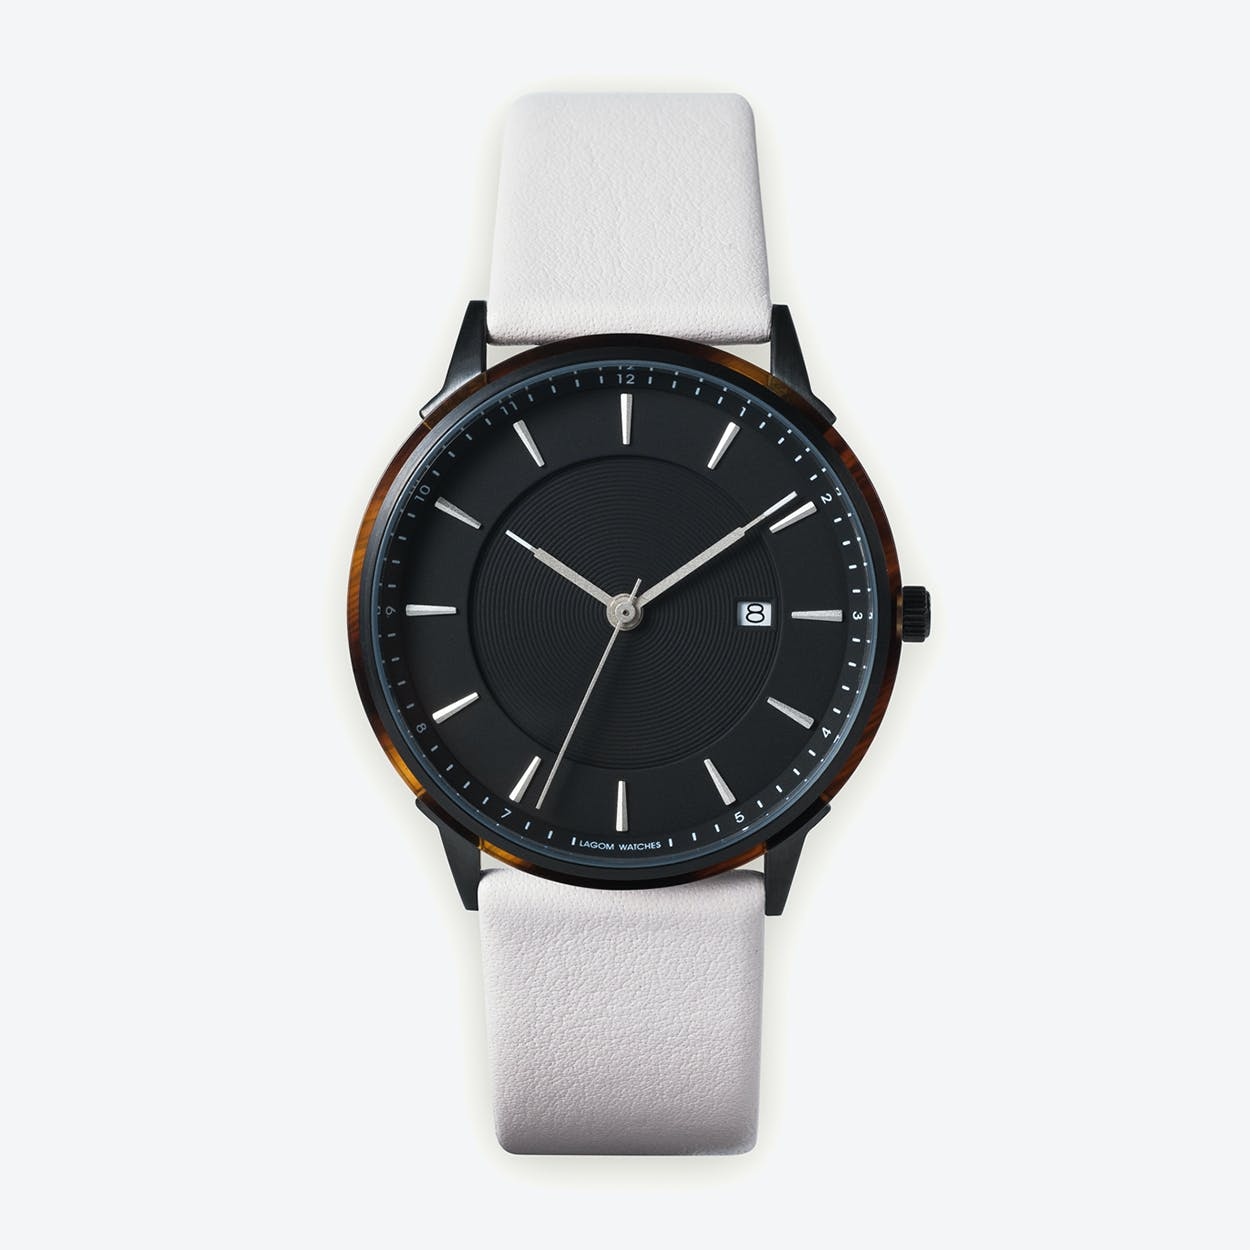 BÖRJA - Black Watch in Black Face and Linio White Leather Strap